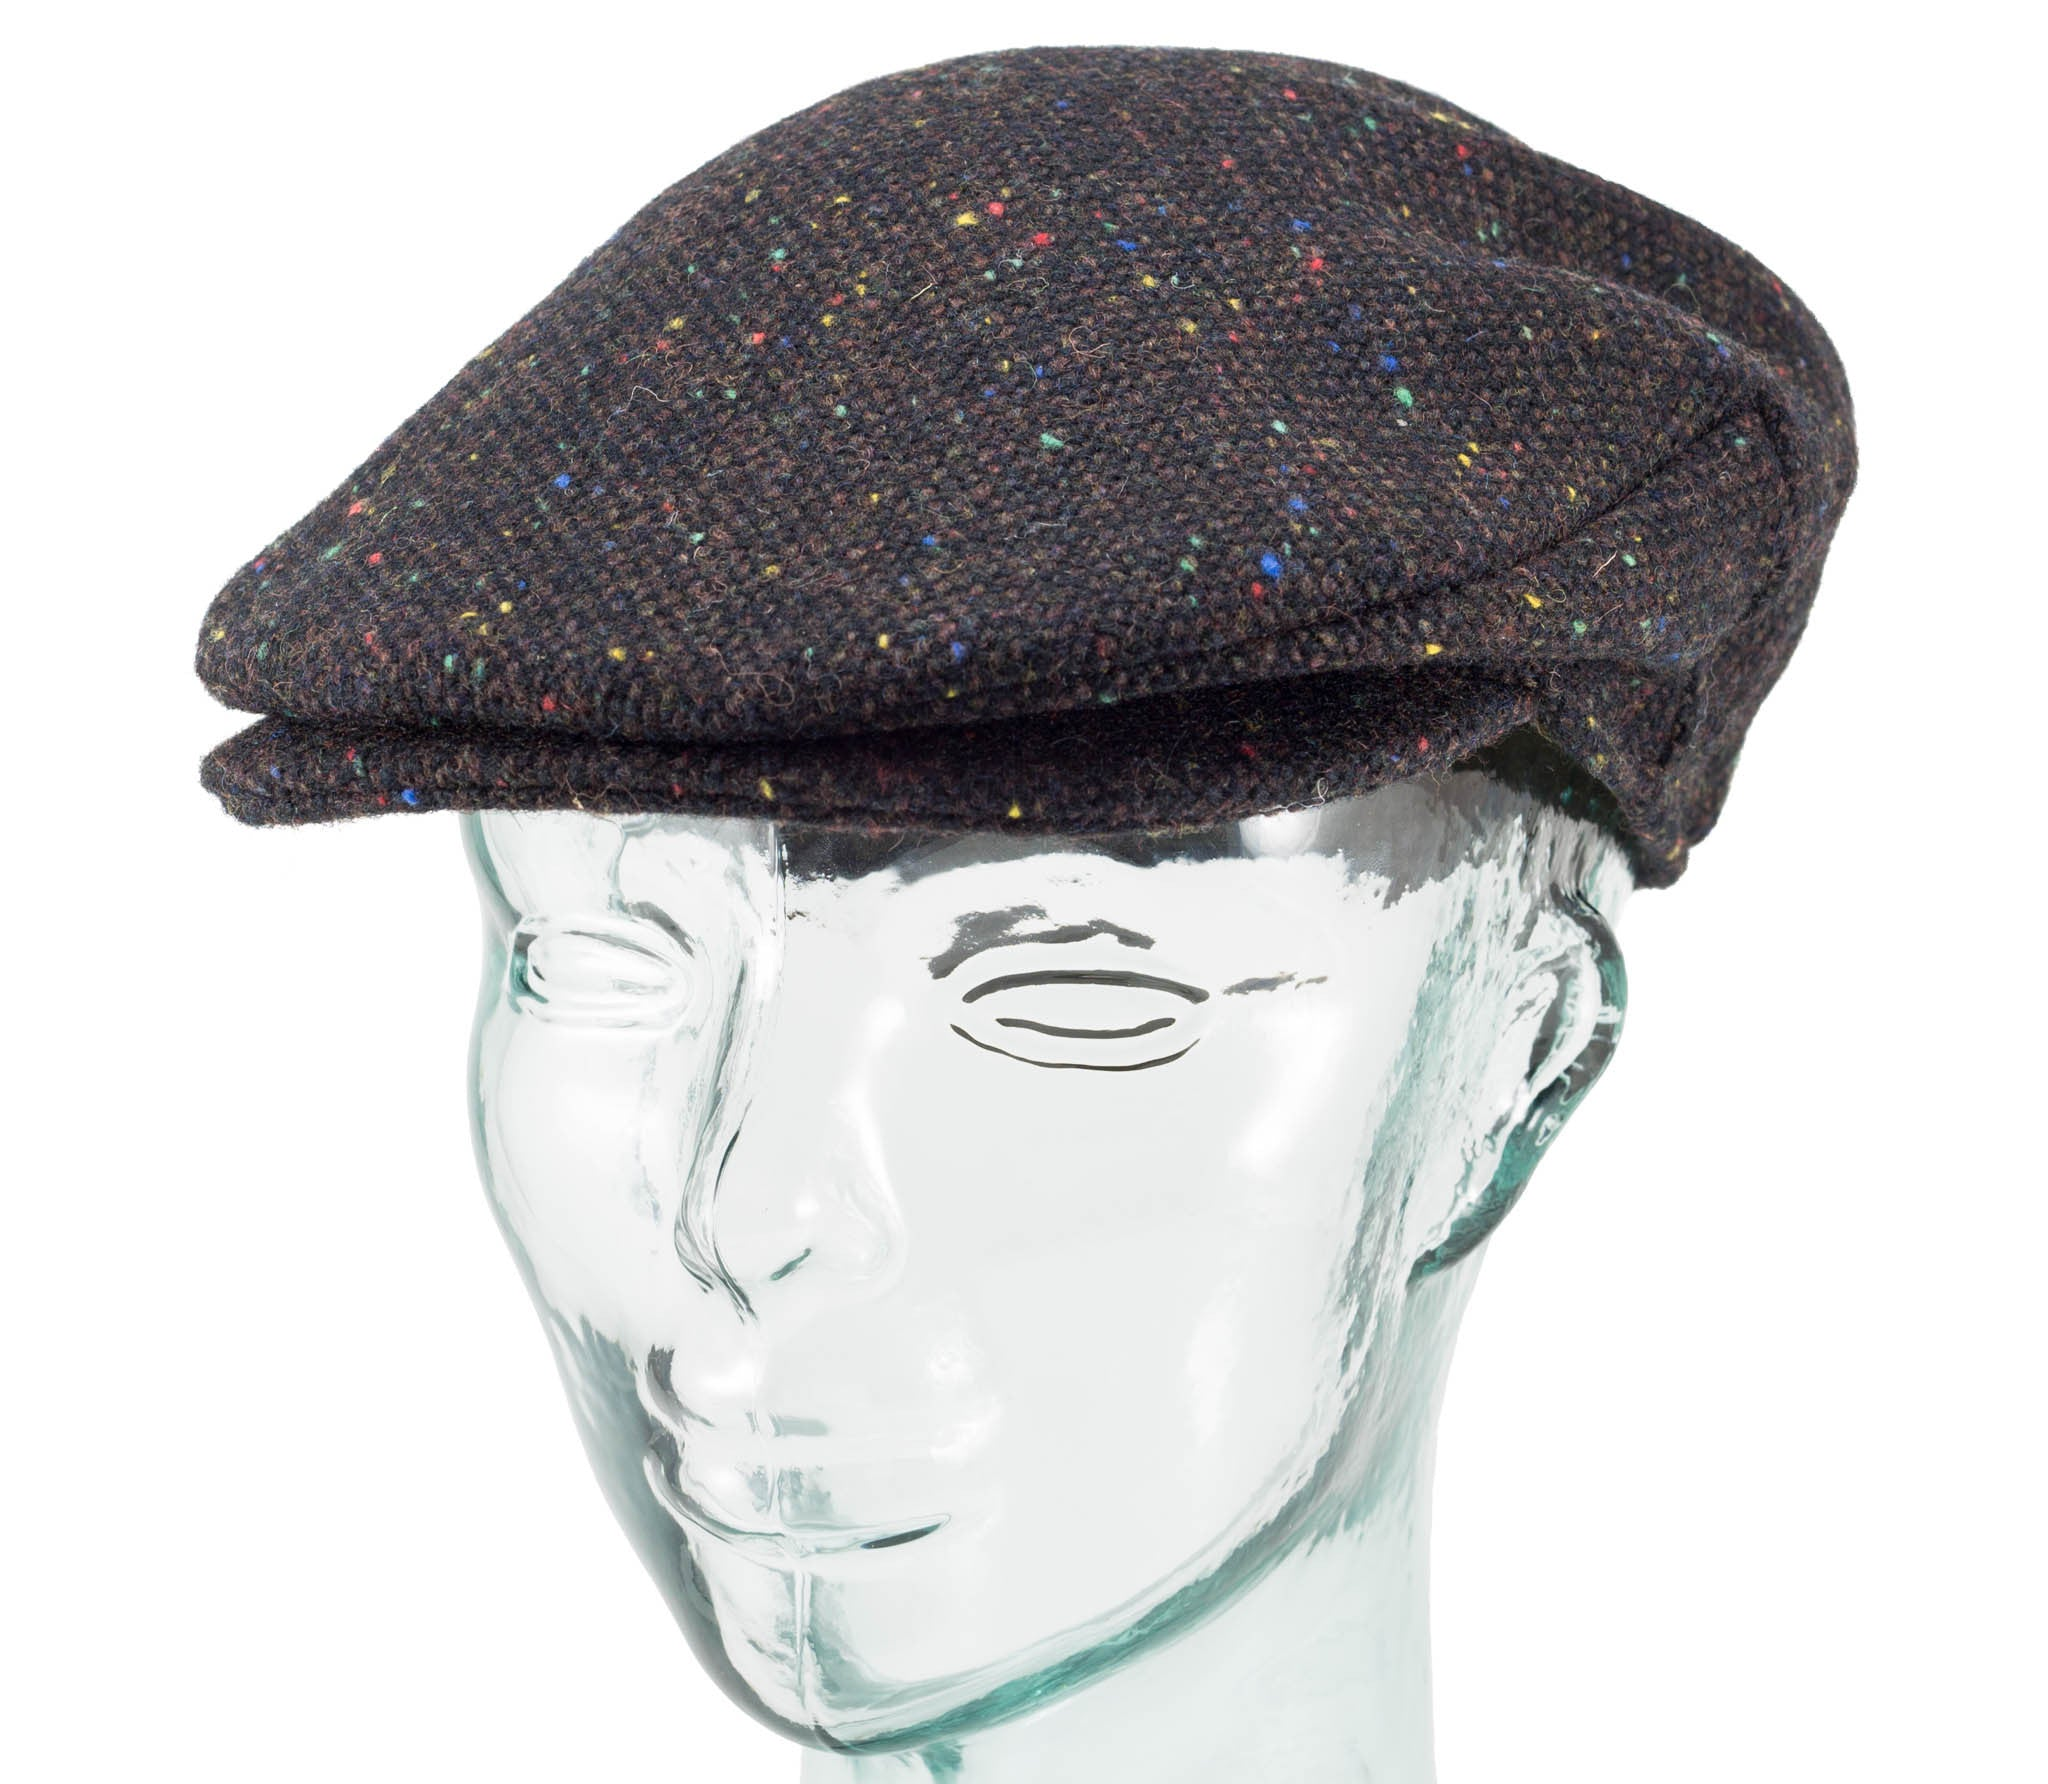 Donegal Tweed - Vintage Style Cap